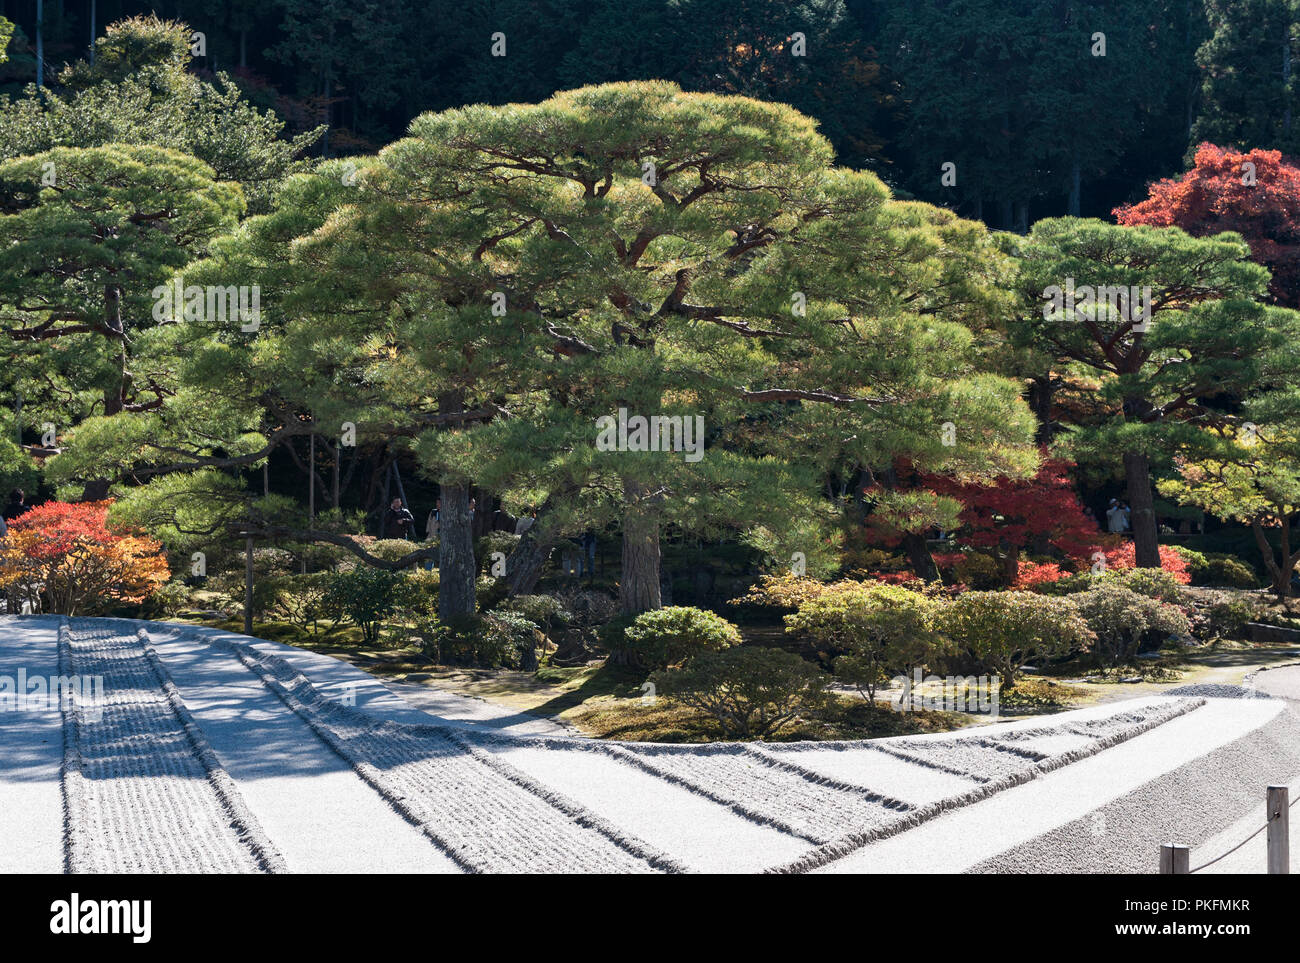 Kyoto, Japan. The kare-sansui (dry landscape) garden of raked gravel called Ginshadan, at Ginkaku-ji zen temple (the Silver Pavilion) - Stock Image